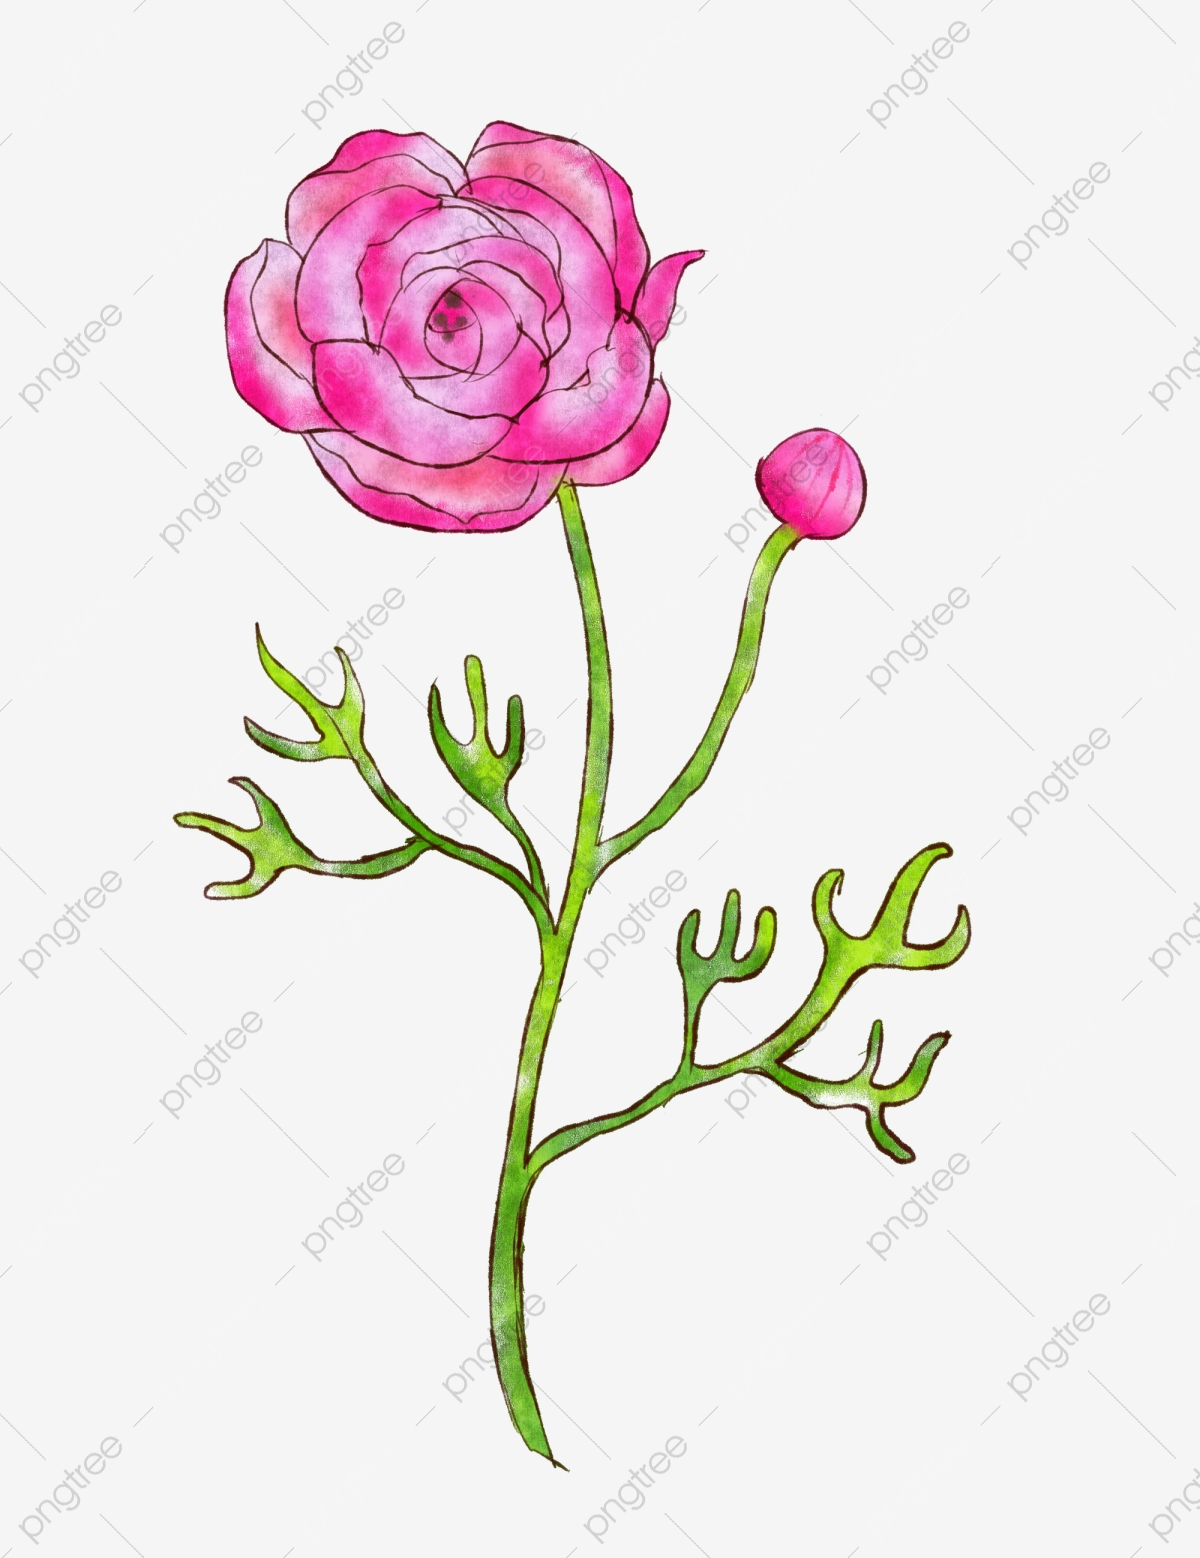 Ranunculus Illustration Flower Ranunculus Ranunculus Flower.